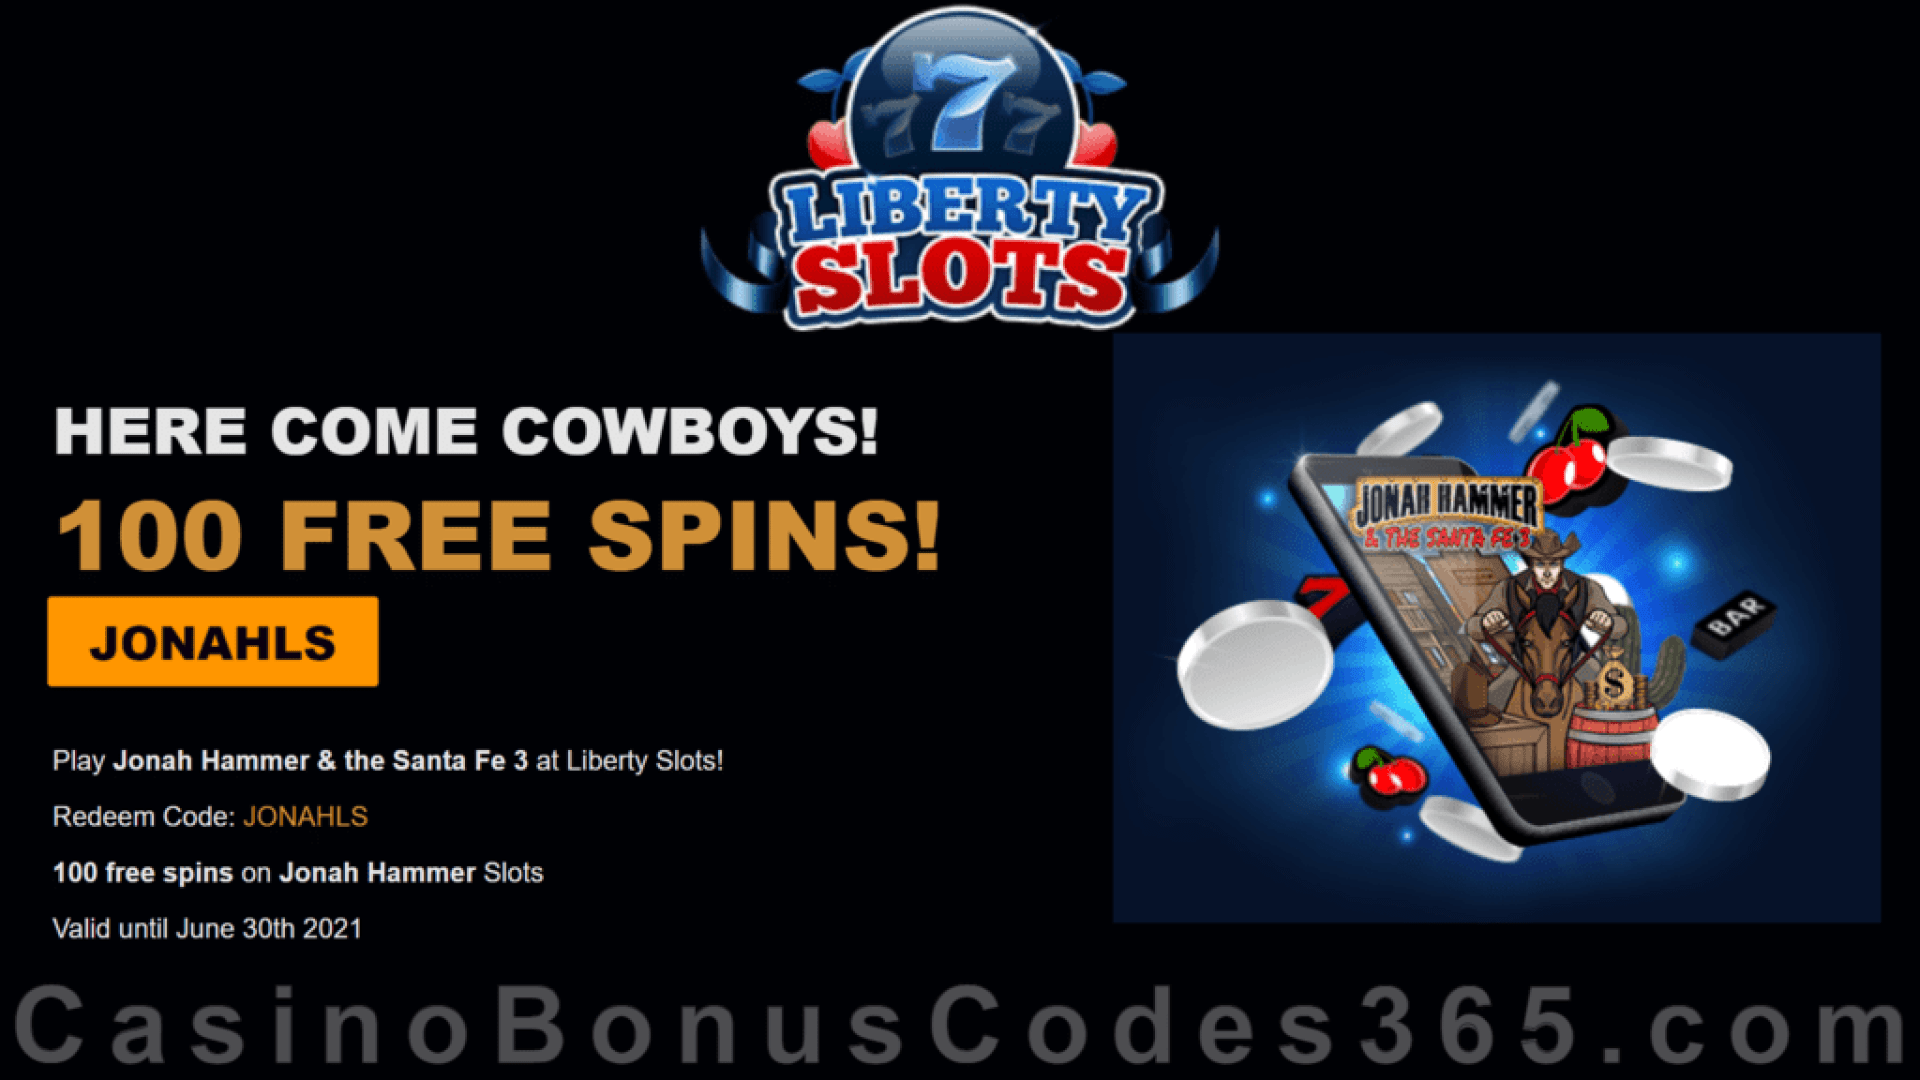 Liberty Slots 100 FREE Jonah Hammer Spins New WGS Game No Deposit Deal